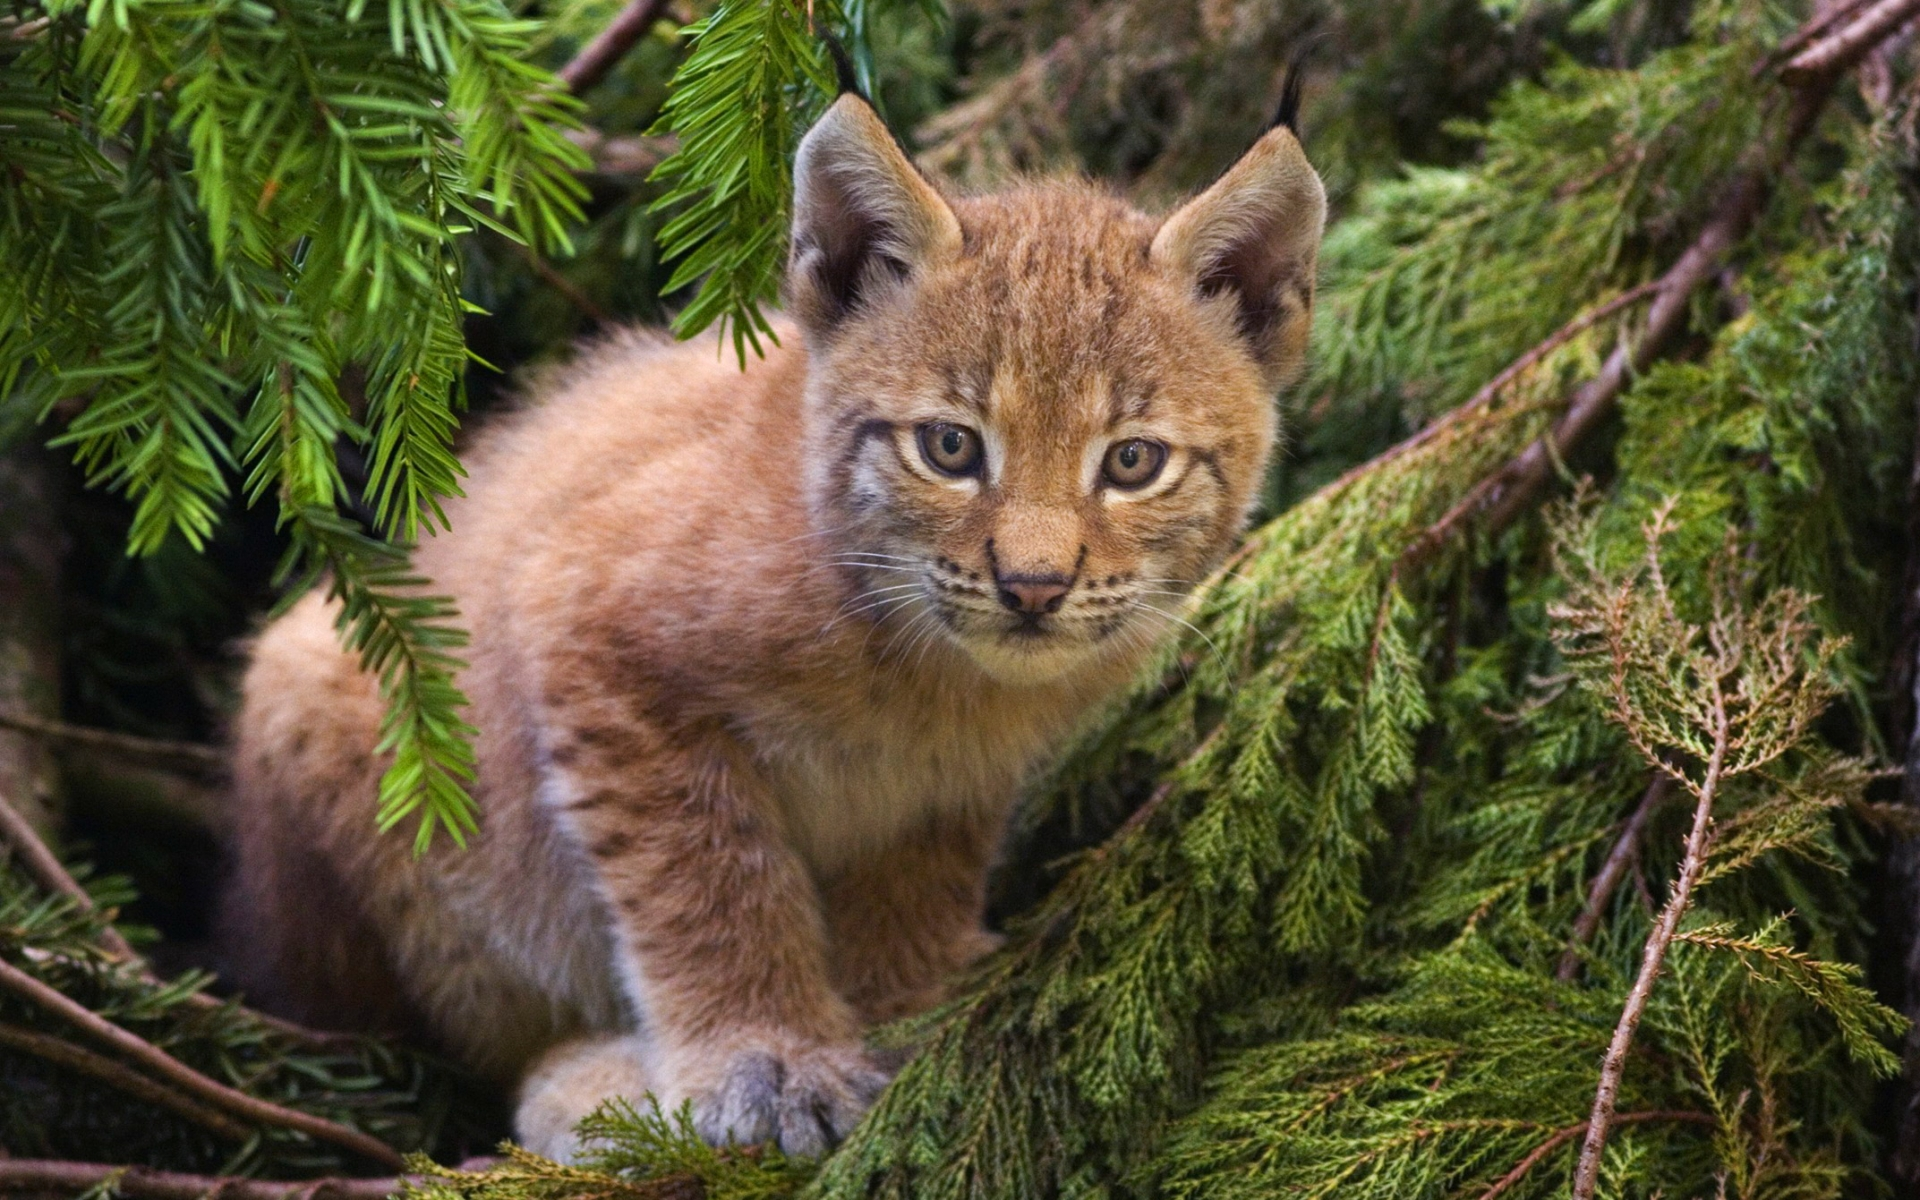 33855 download wallpaper Animals, Bobcats screensavers and pictures for free